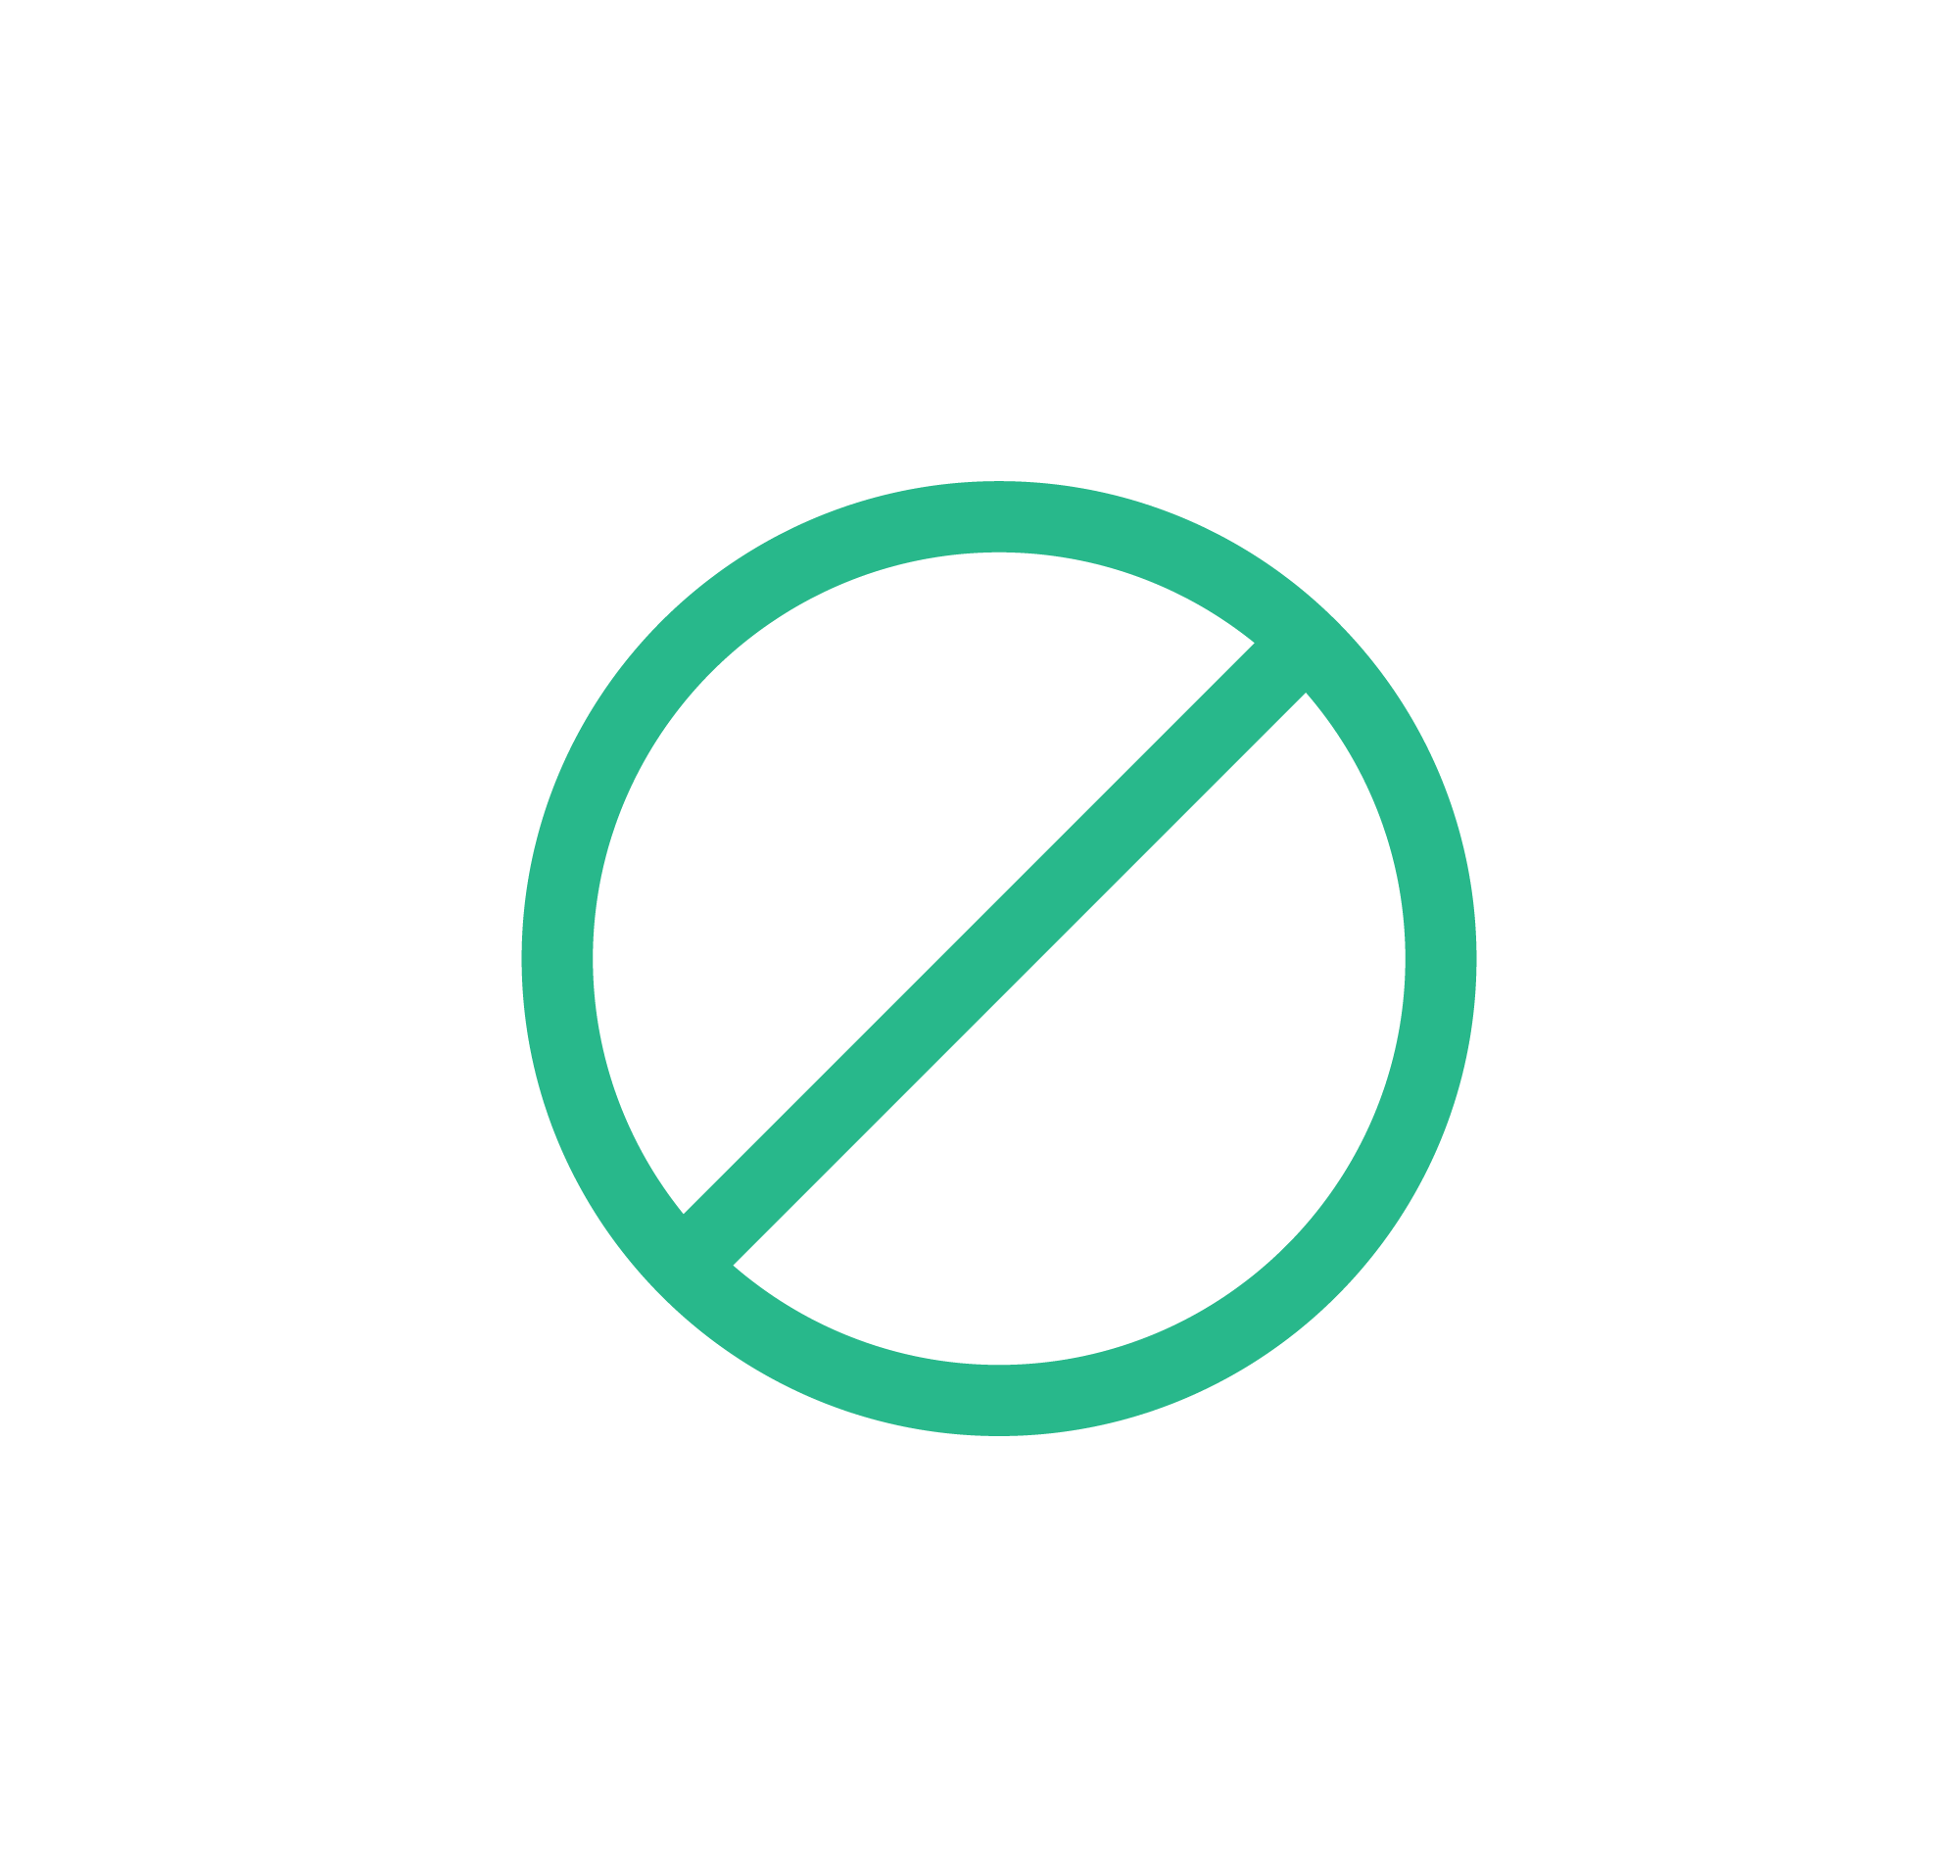 problem_icon-17.png